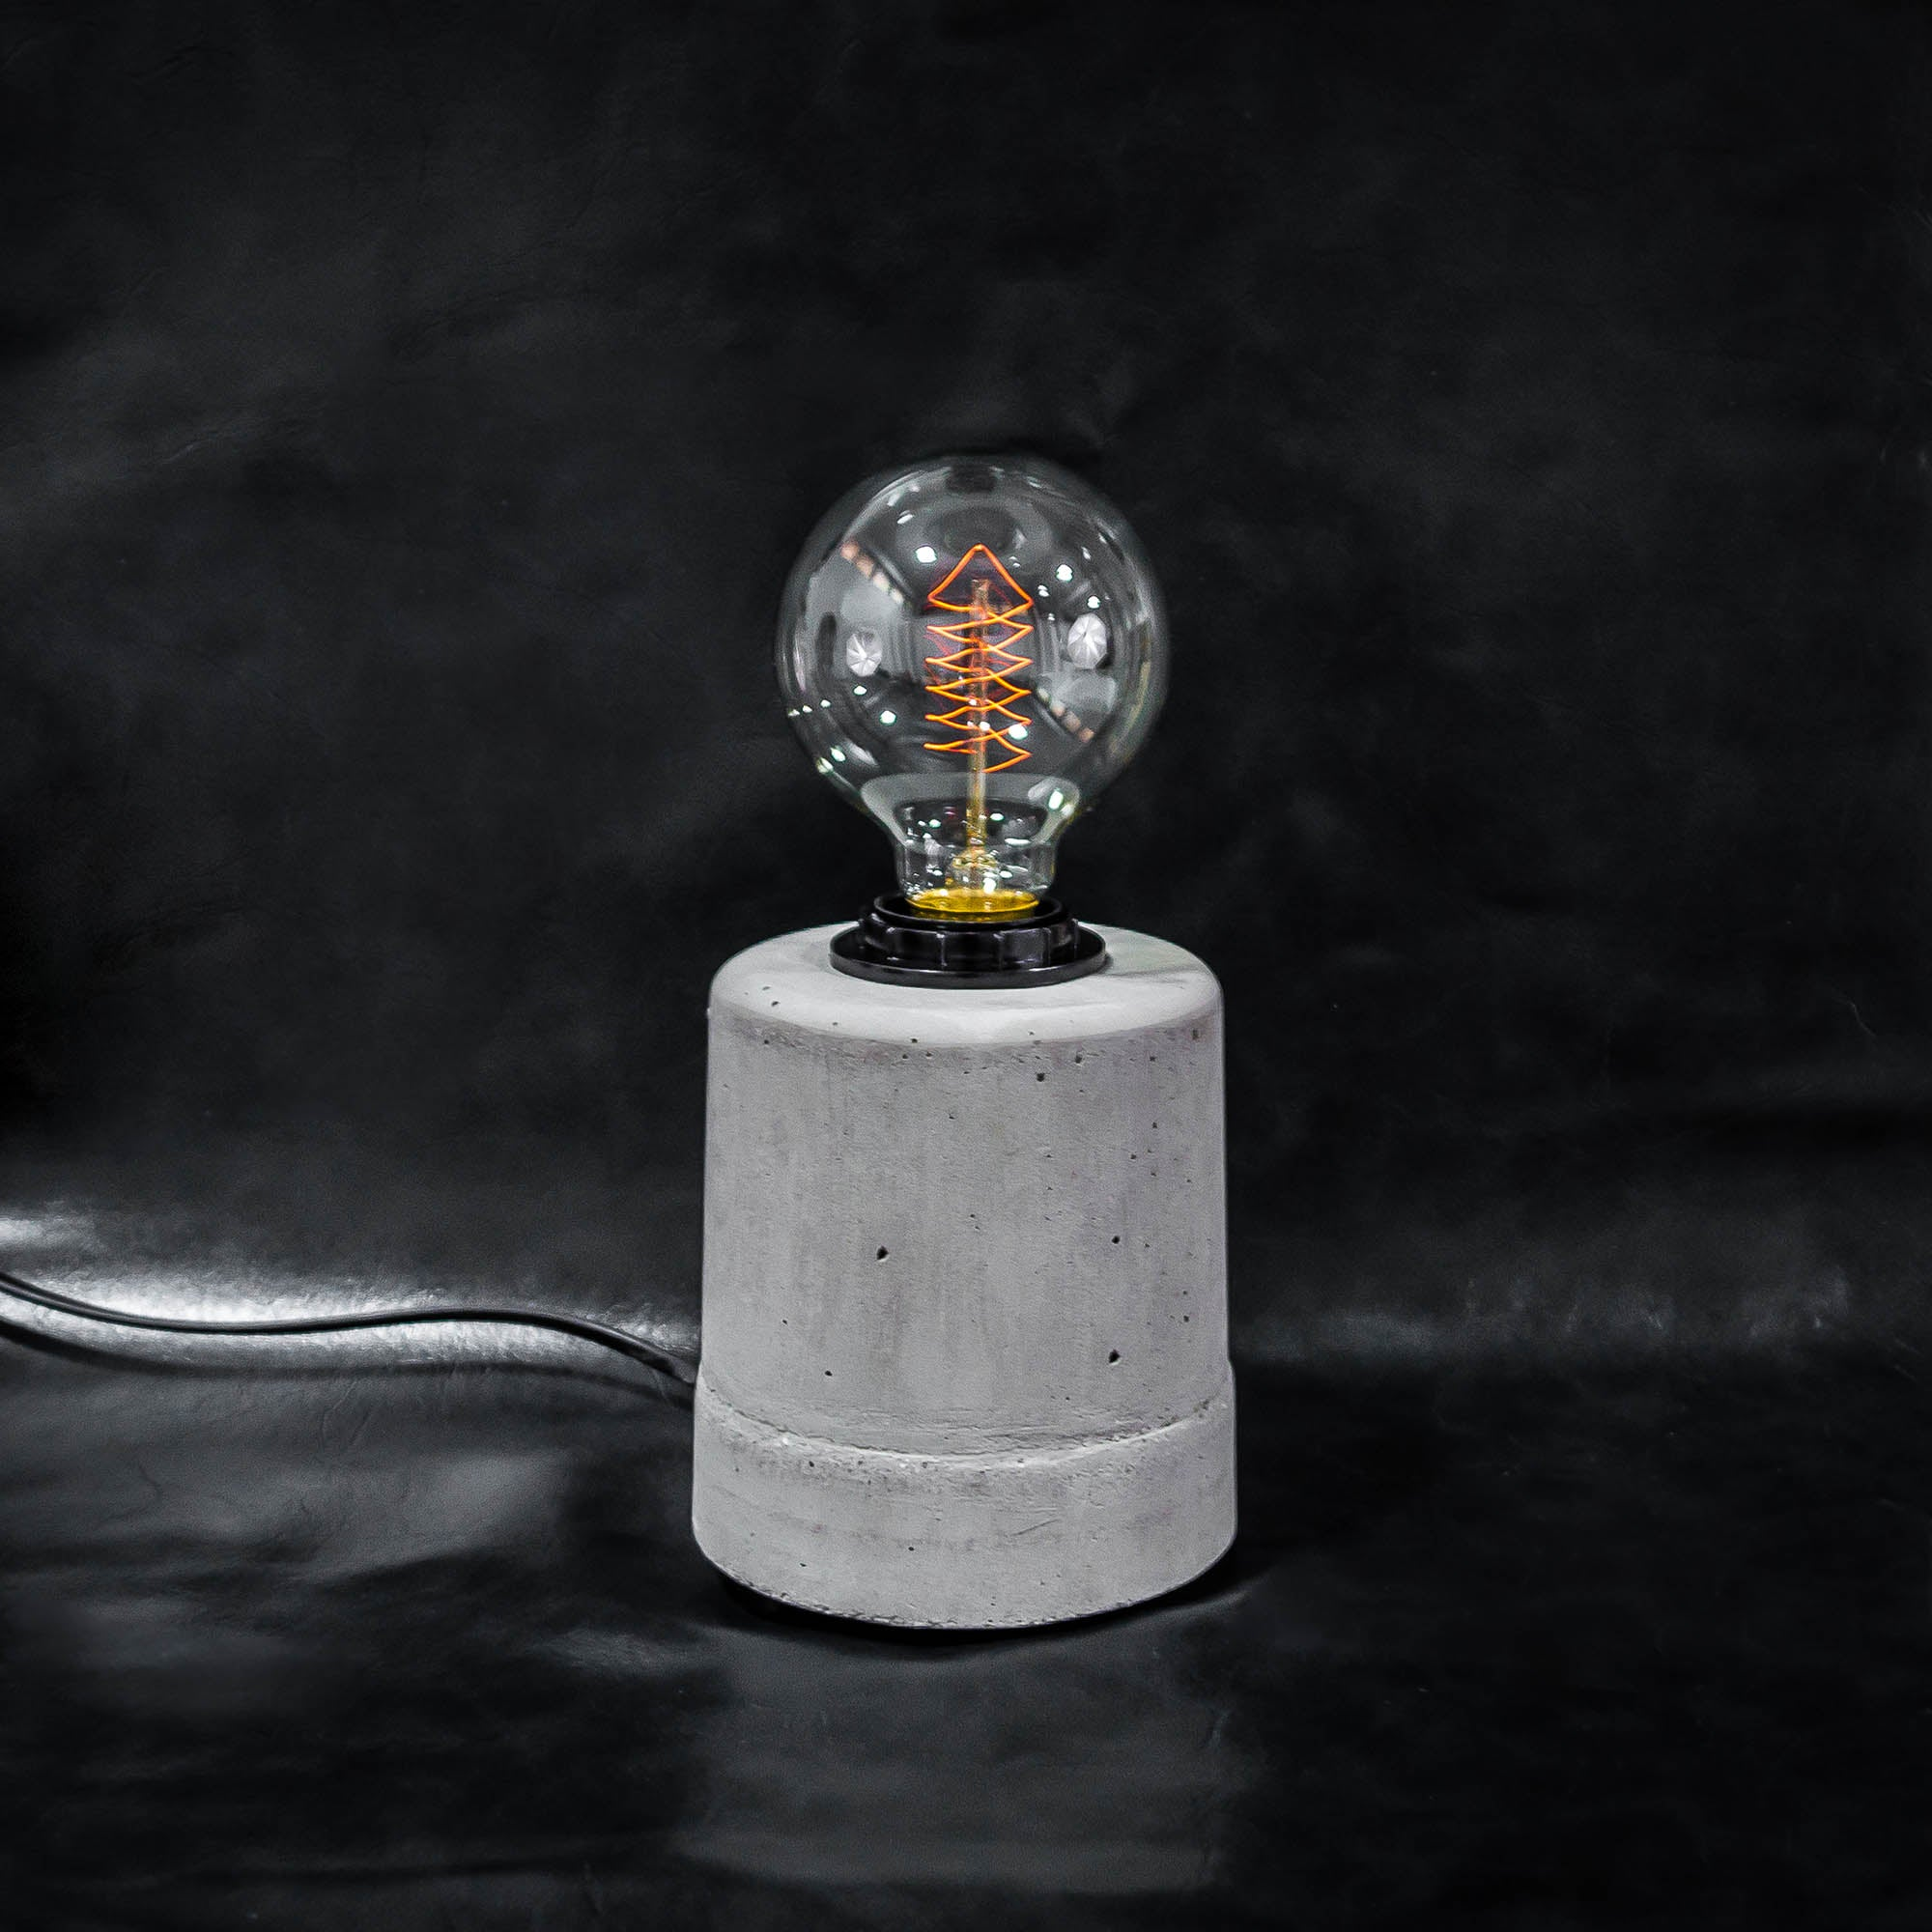 CDL110 Minimalist Californian Concrete Desk Lamp